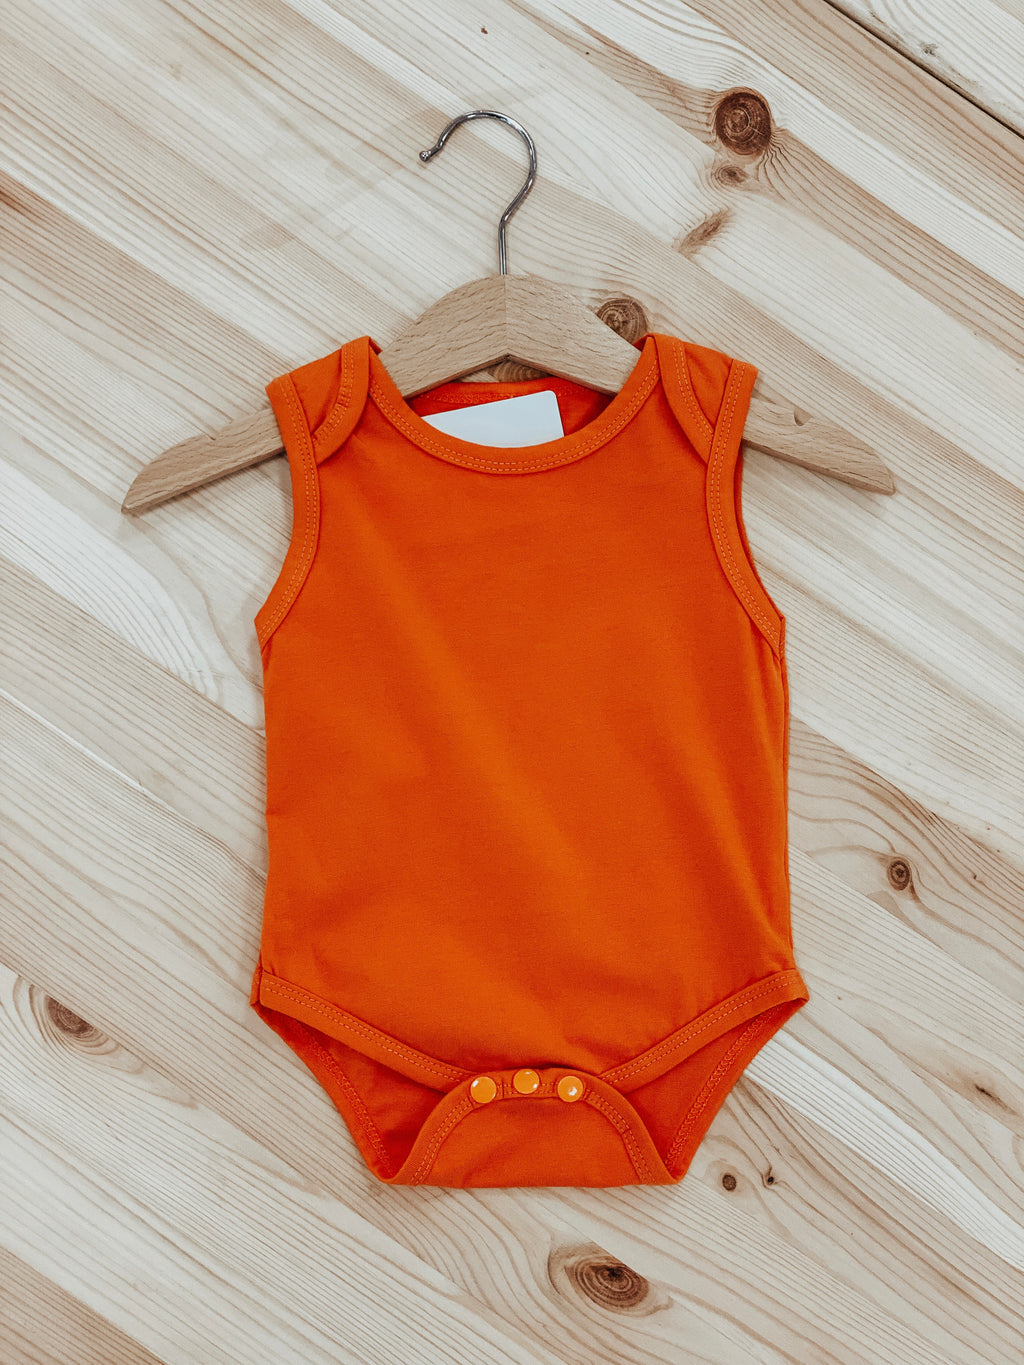 Basic Babe Bodysuit in Orange